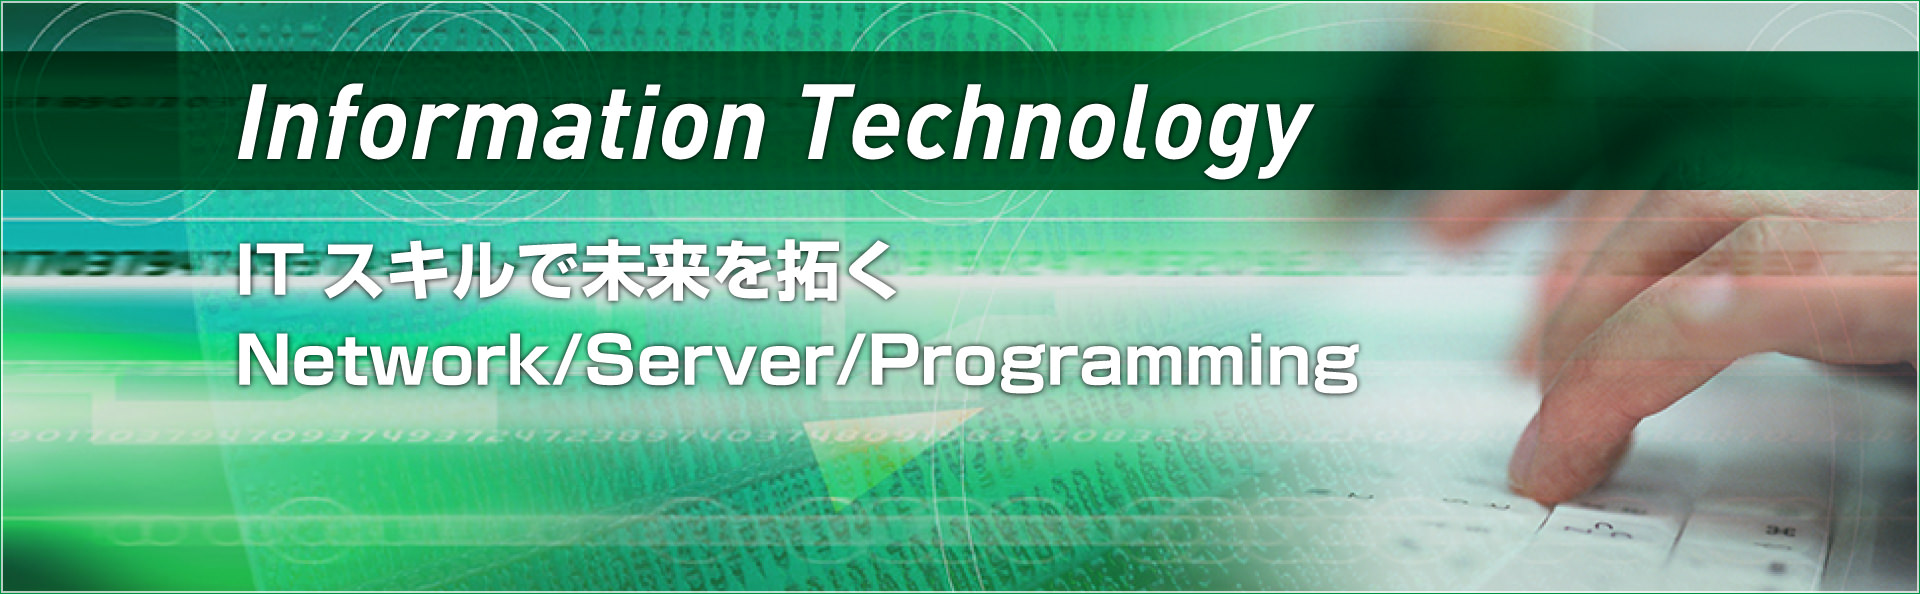 Information Technology - ITスキルで未来を拓くNetwork/Server/Programming